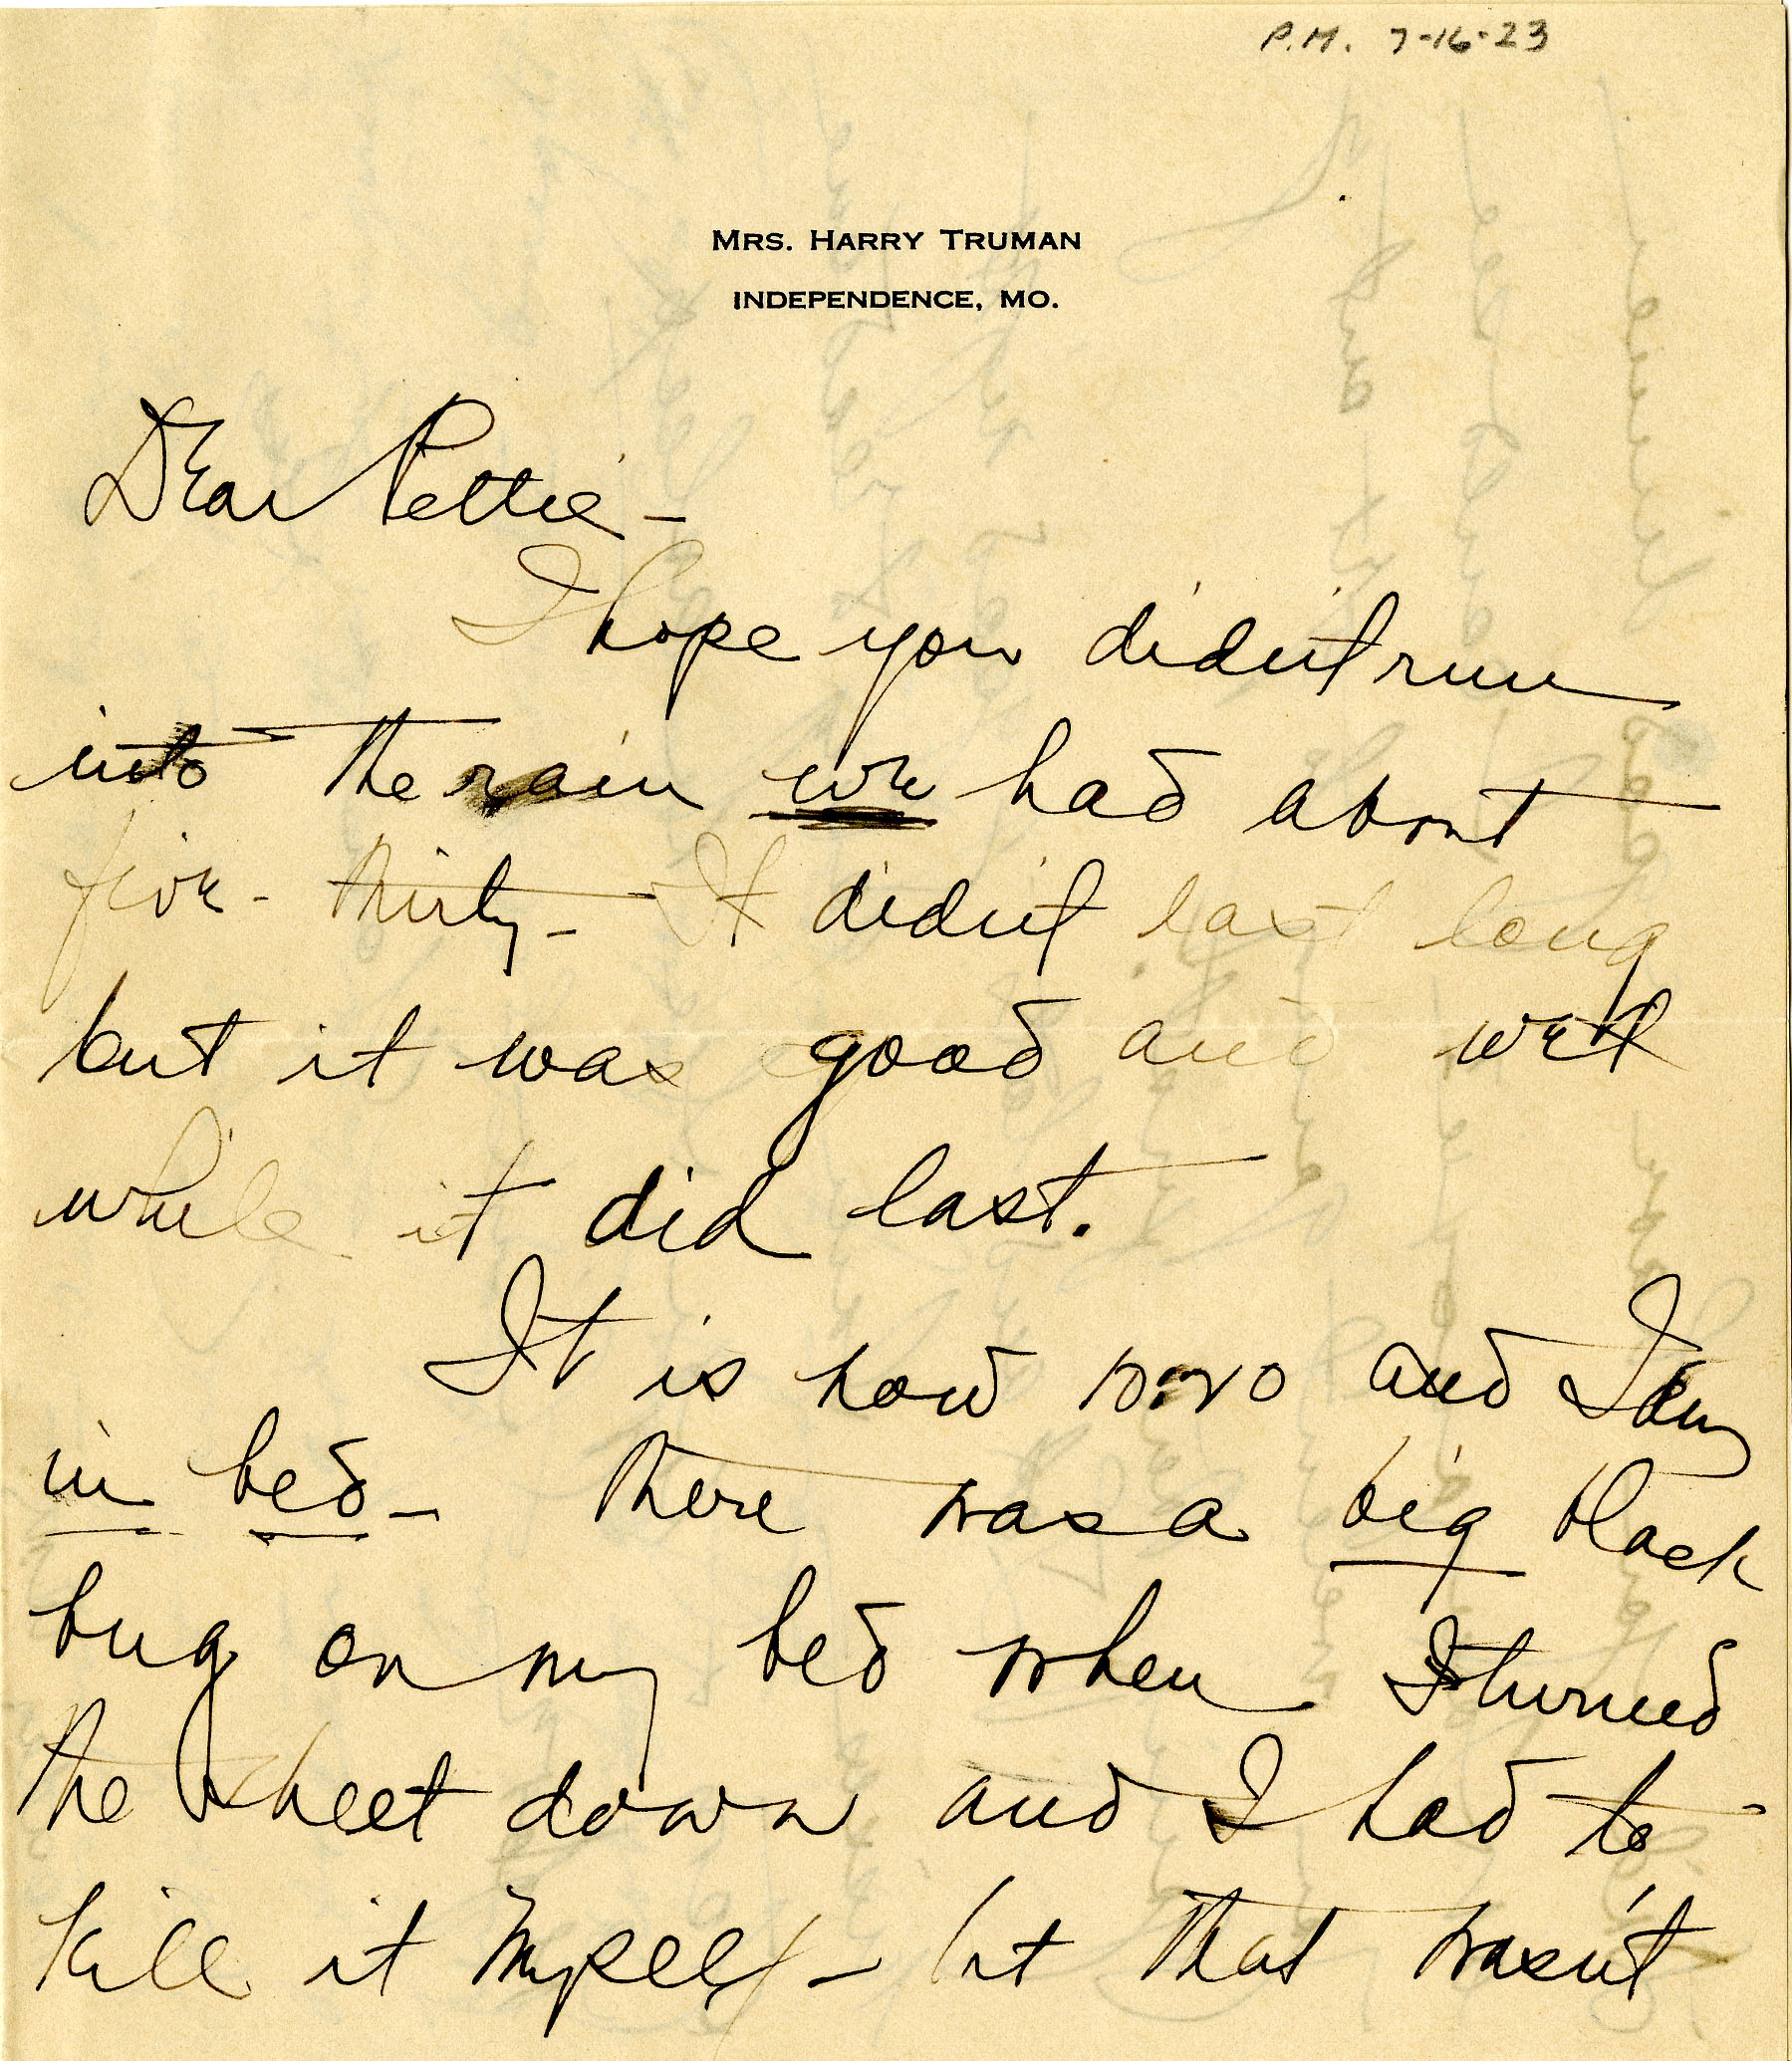 Former First Lady Bess Truman's Letters to President Harry Truman